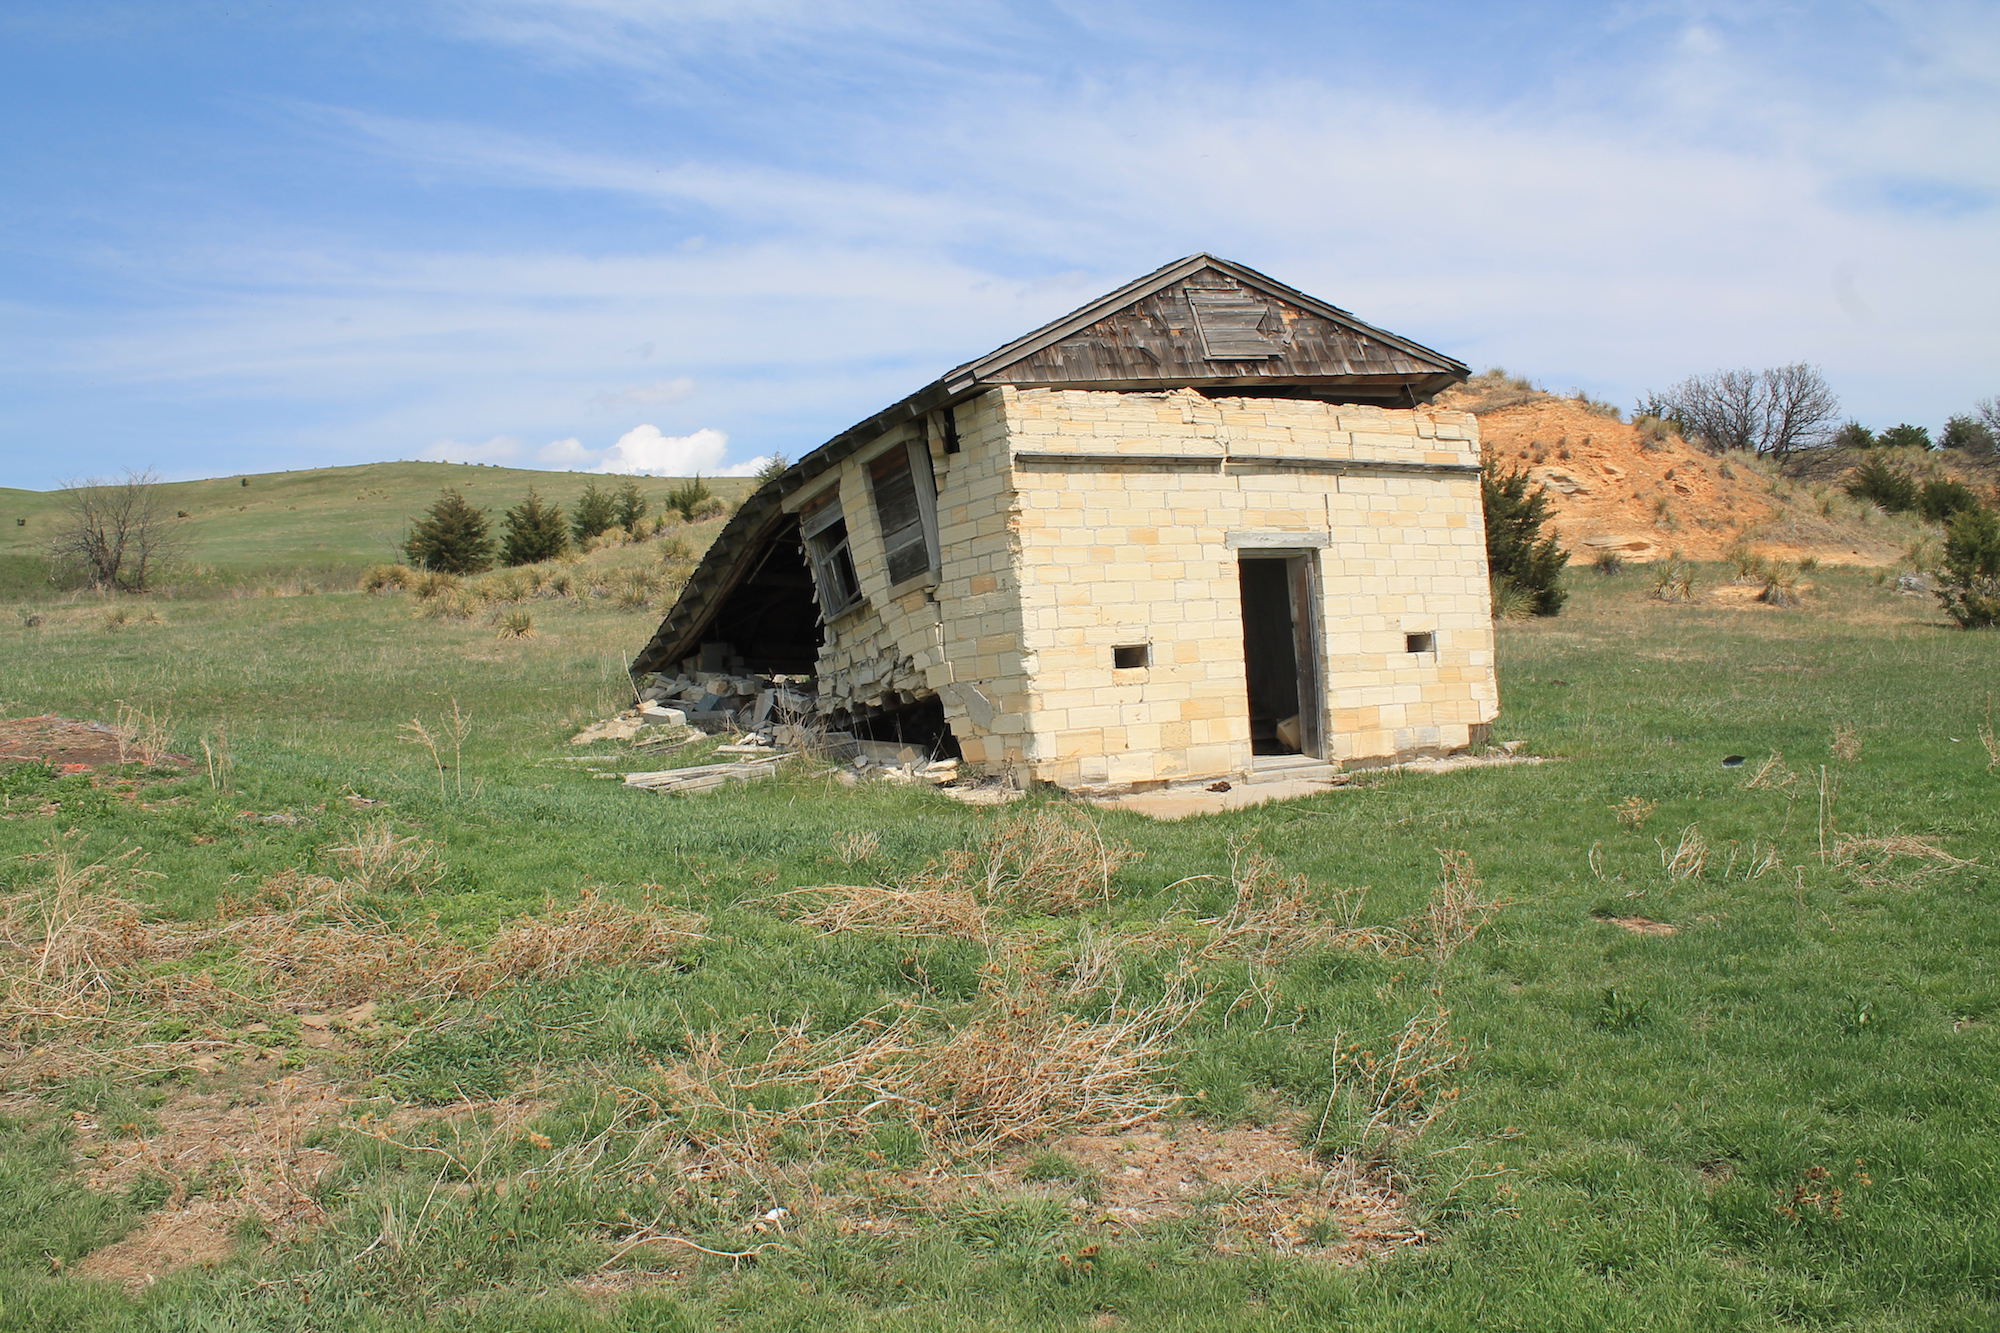 One of the cabins at Chalk Rock.